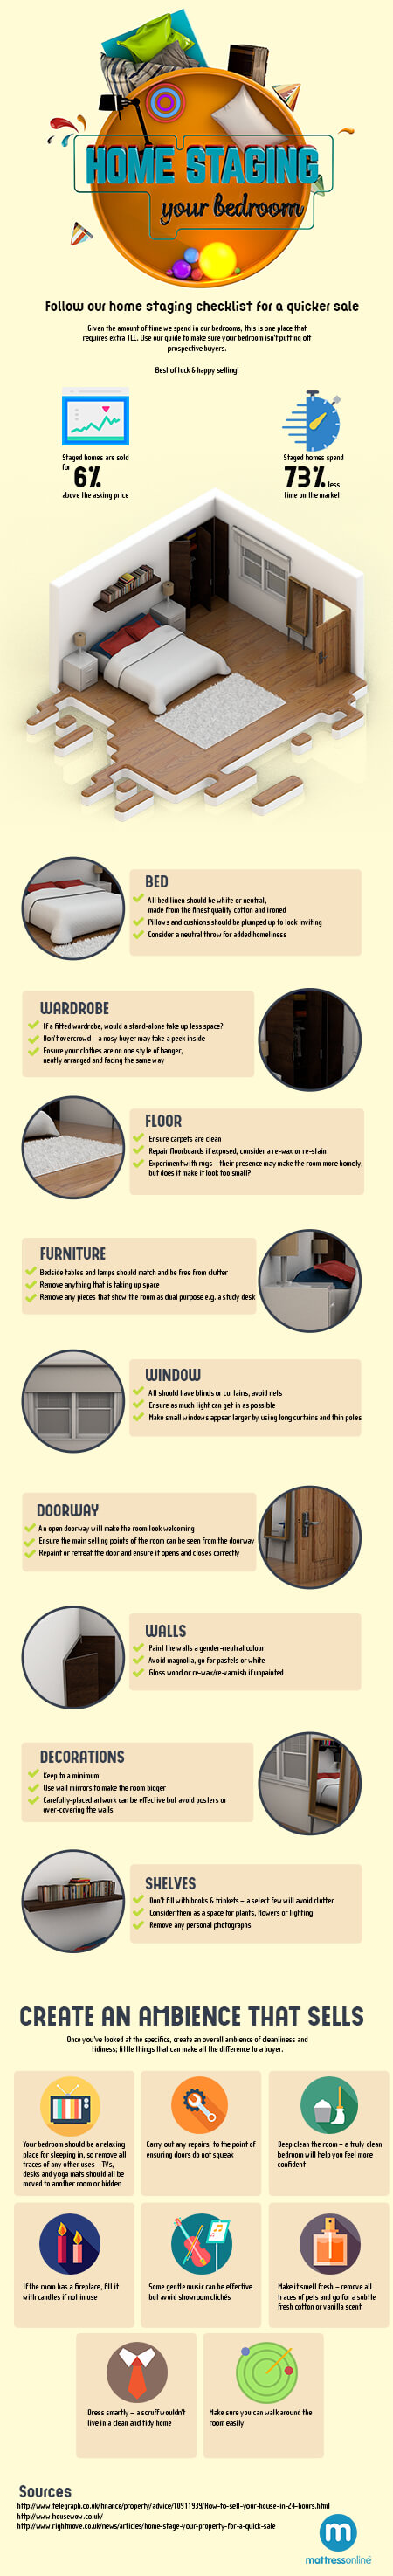 The Secrets of Home-Staging Your Bedroom Infographic